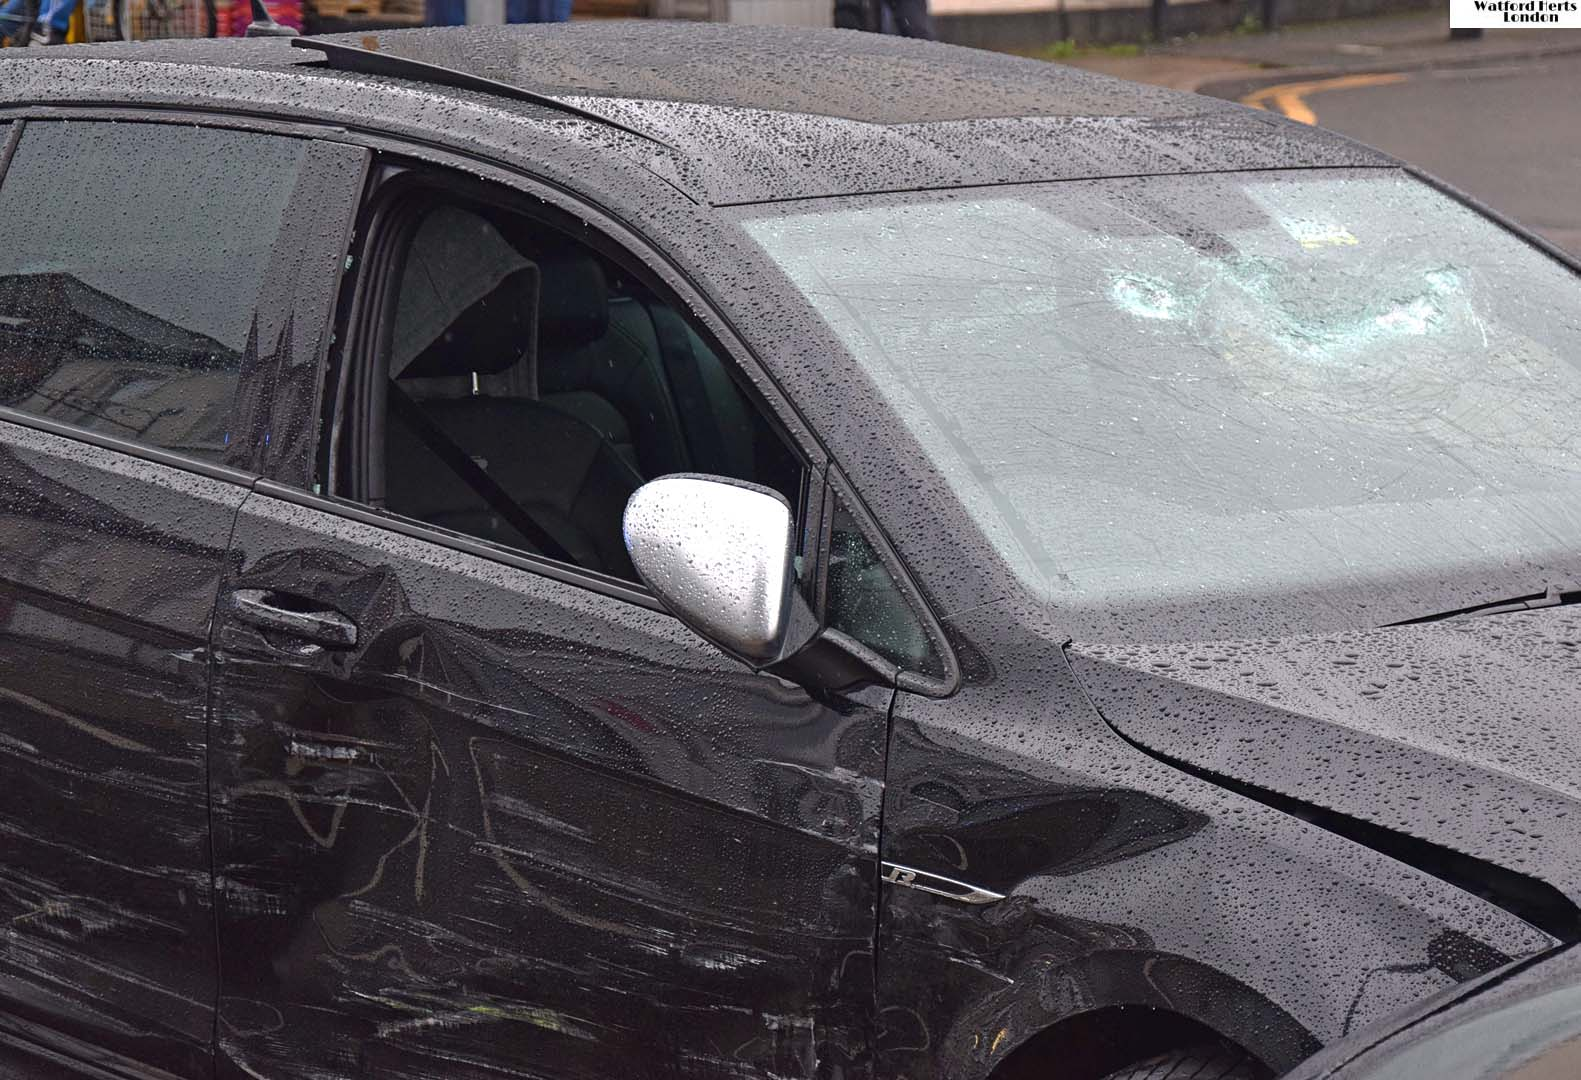 Car screen smashed collision police scrapes paint